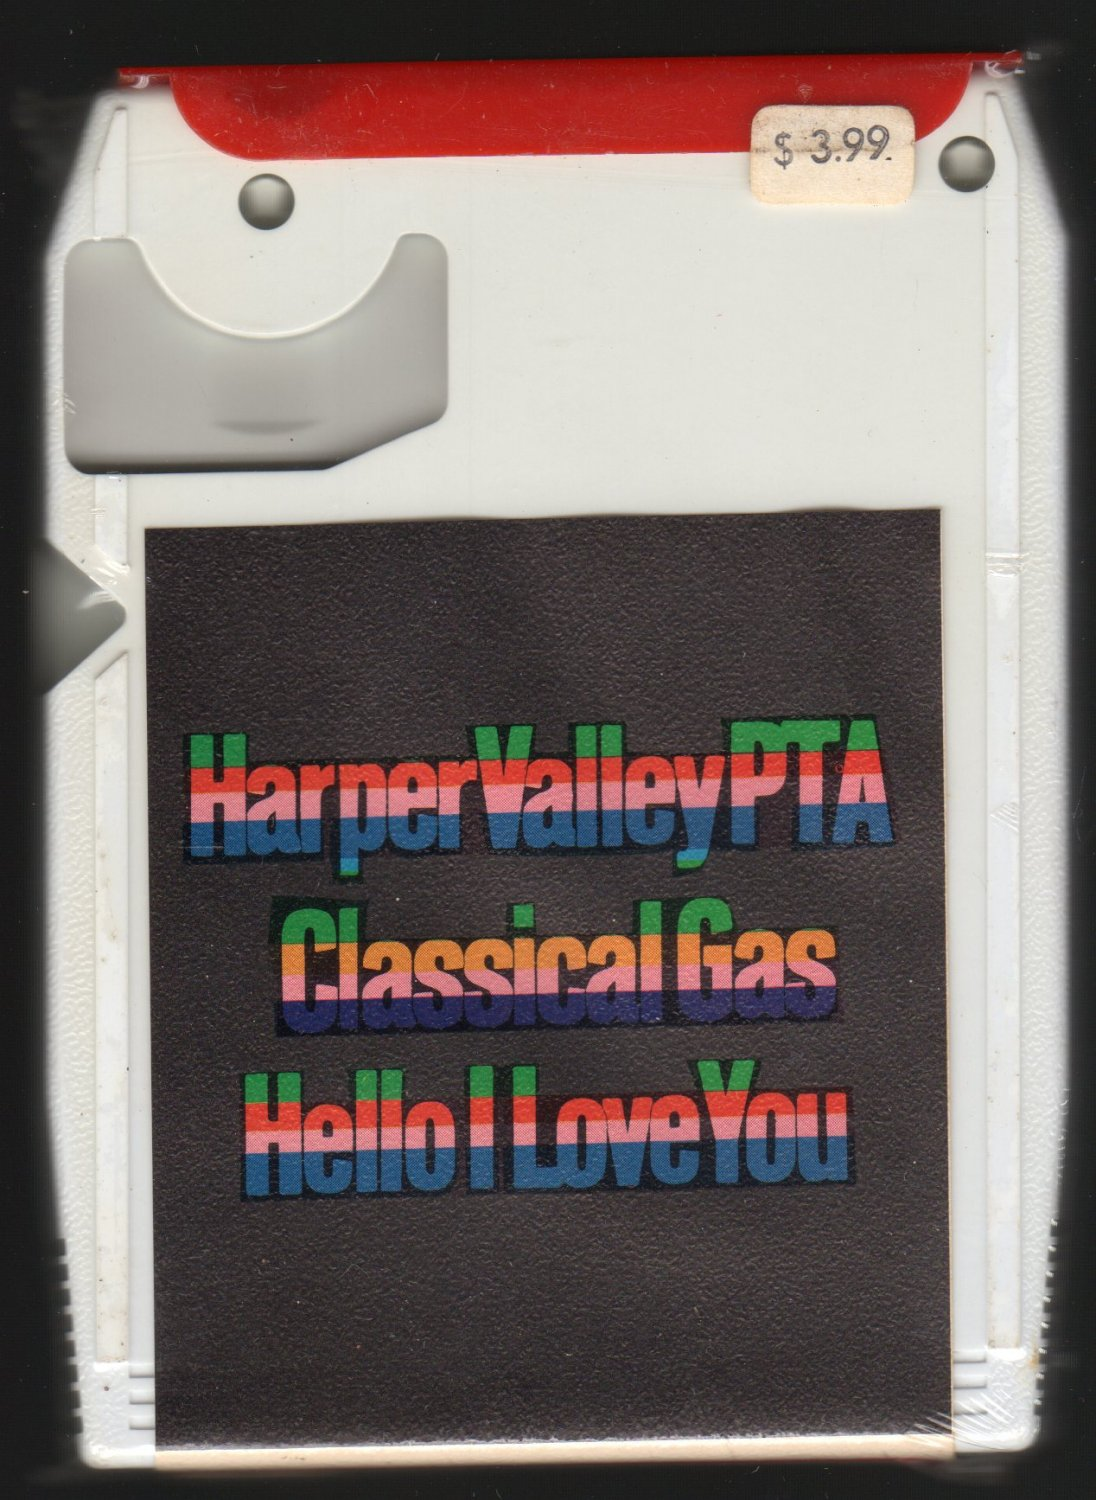 Harper Valley P.T.A. And Other Great Hits SPAR 1024 Sealed A4 8-TRACK TAPE